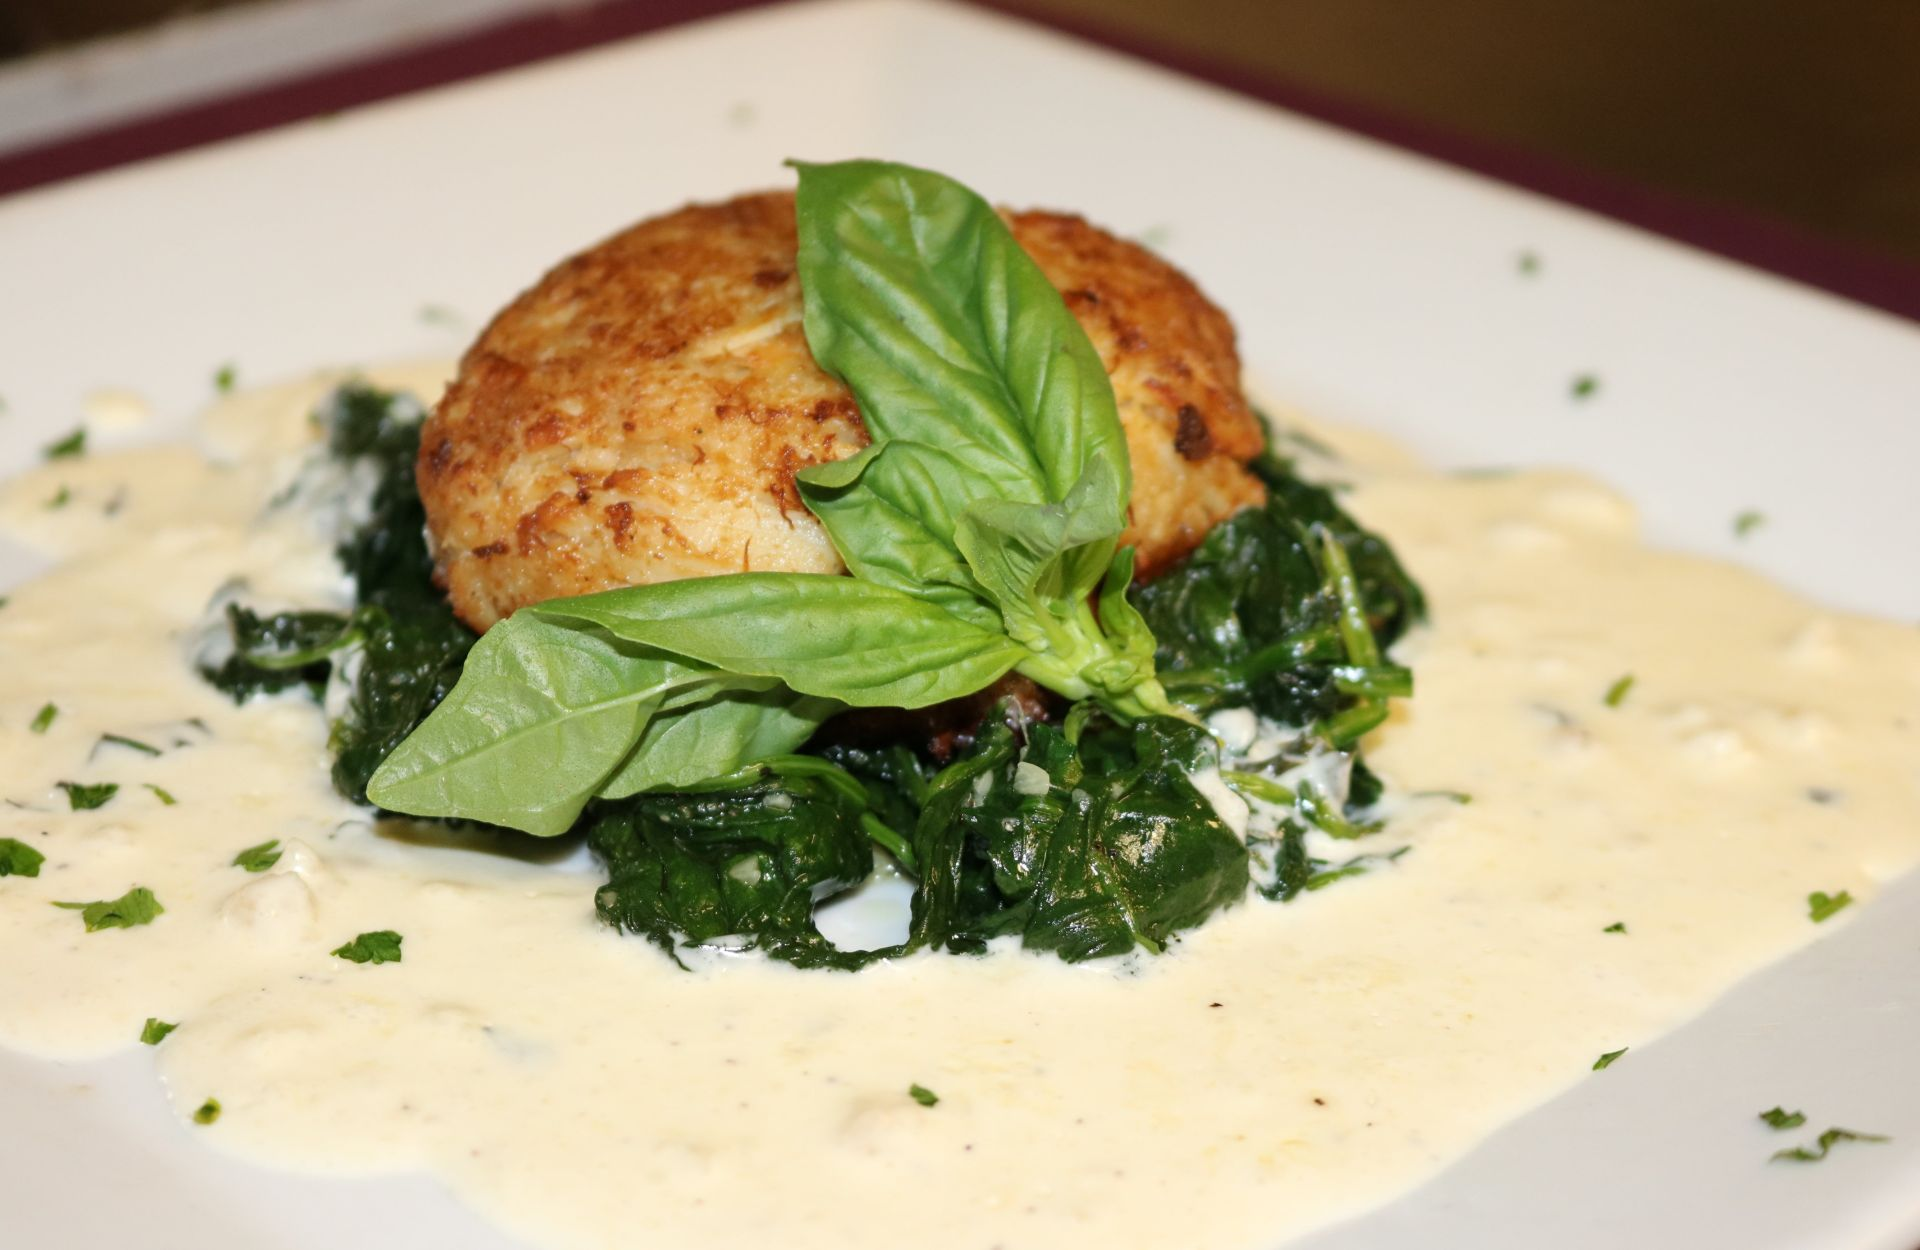 Crab cake over a bed of sauteed spinach with basil